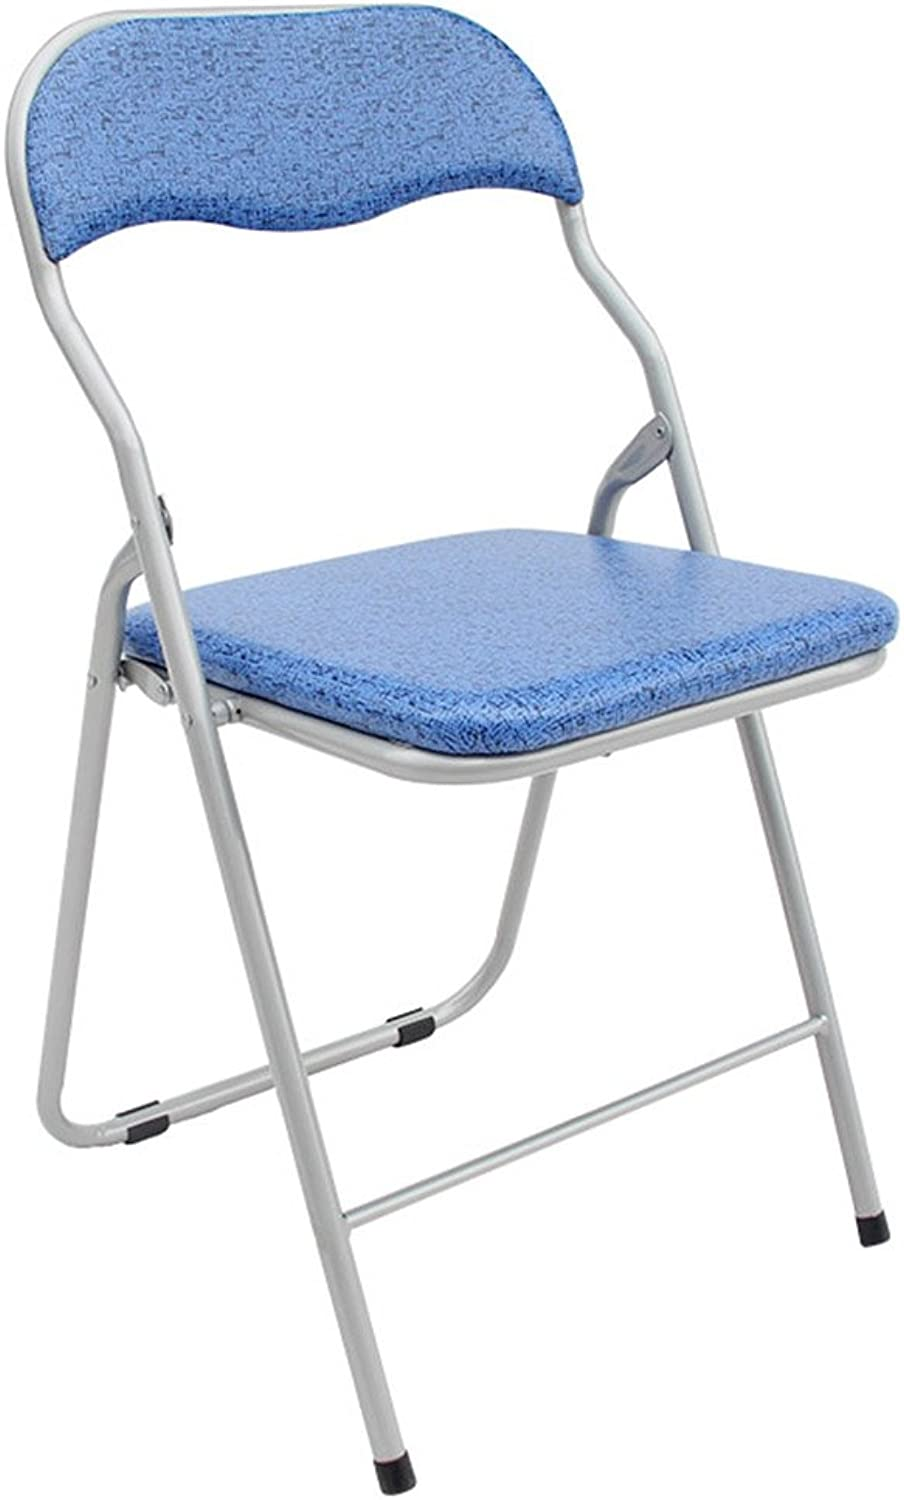 bluee backrest wrought iron folding chair kitchen portable stool 141531 inches